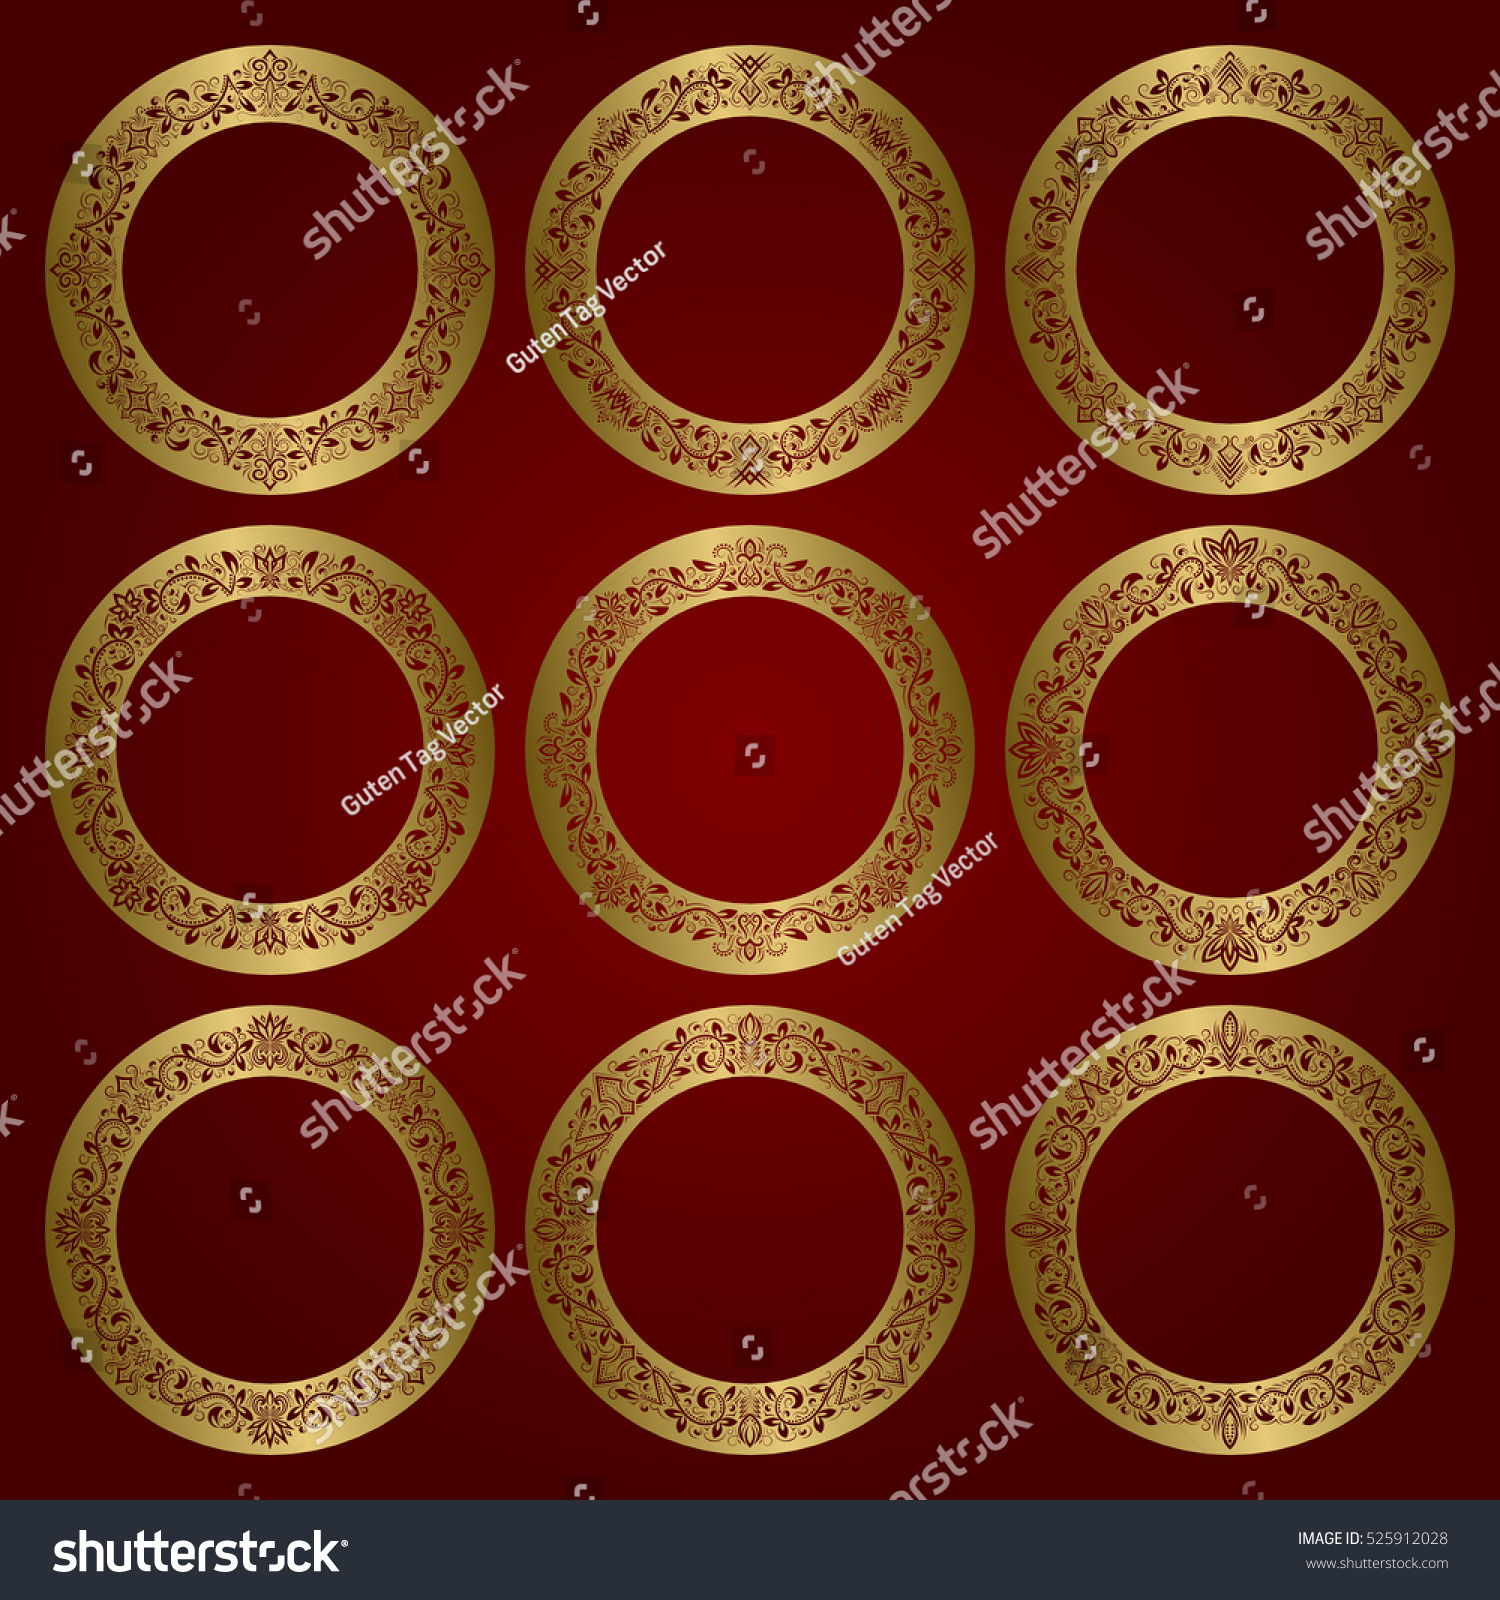 Golden round frames set floral ornament stock vector 525912028 golden round frames set of floral ornament borders sciox Choice Image